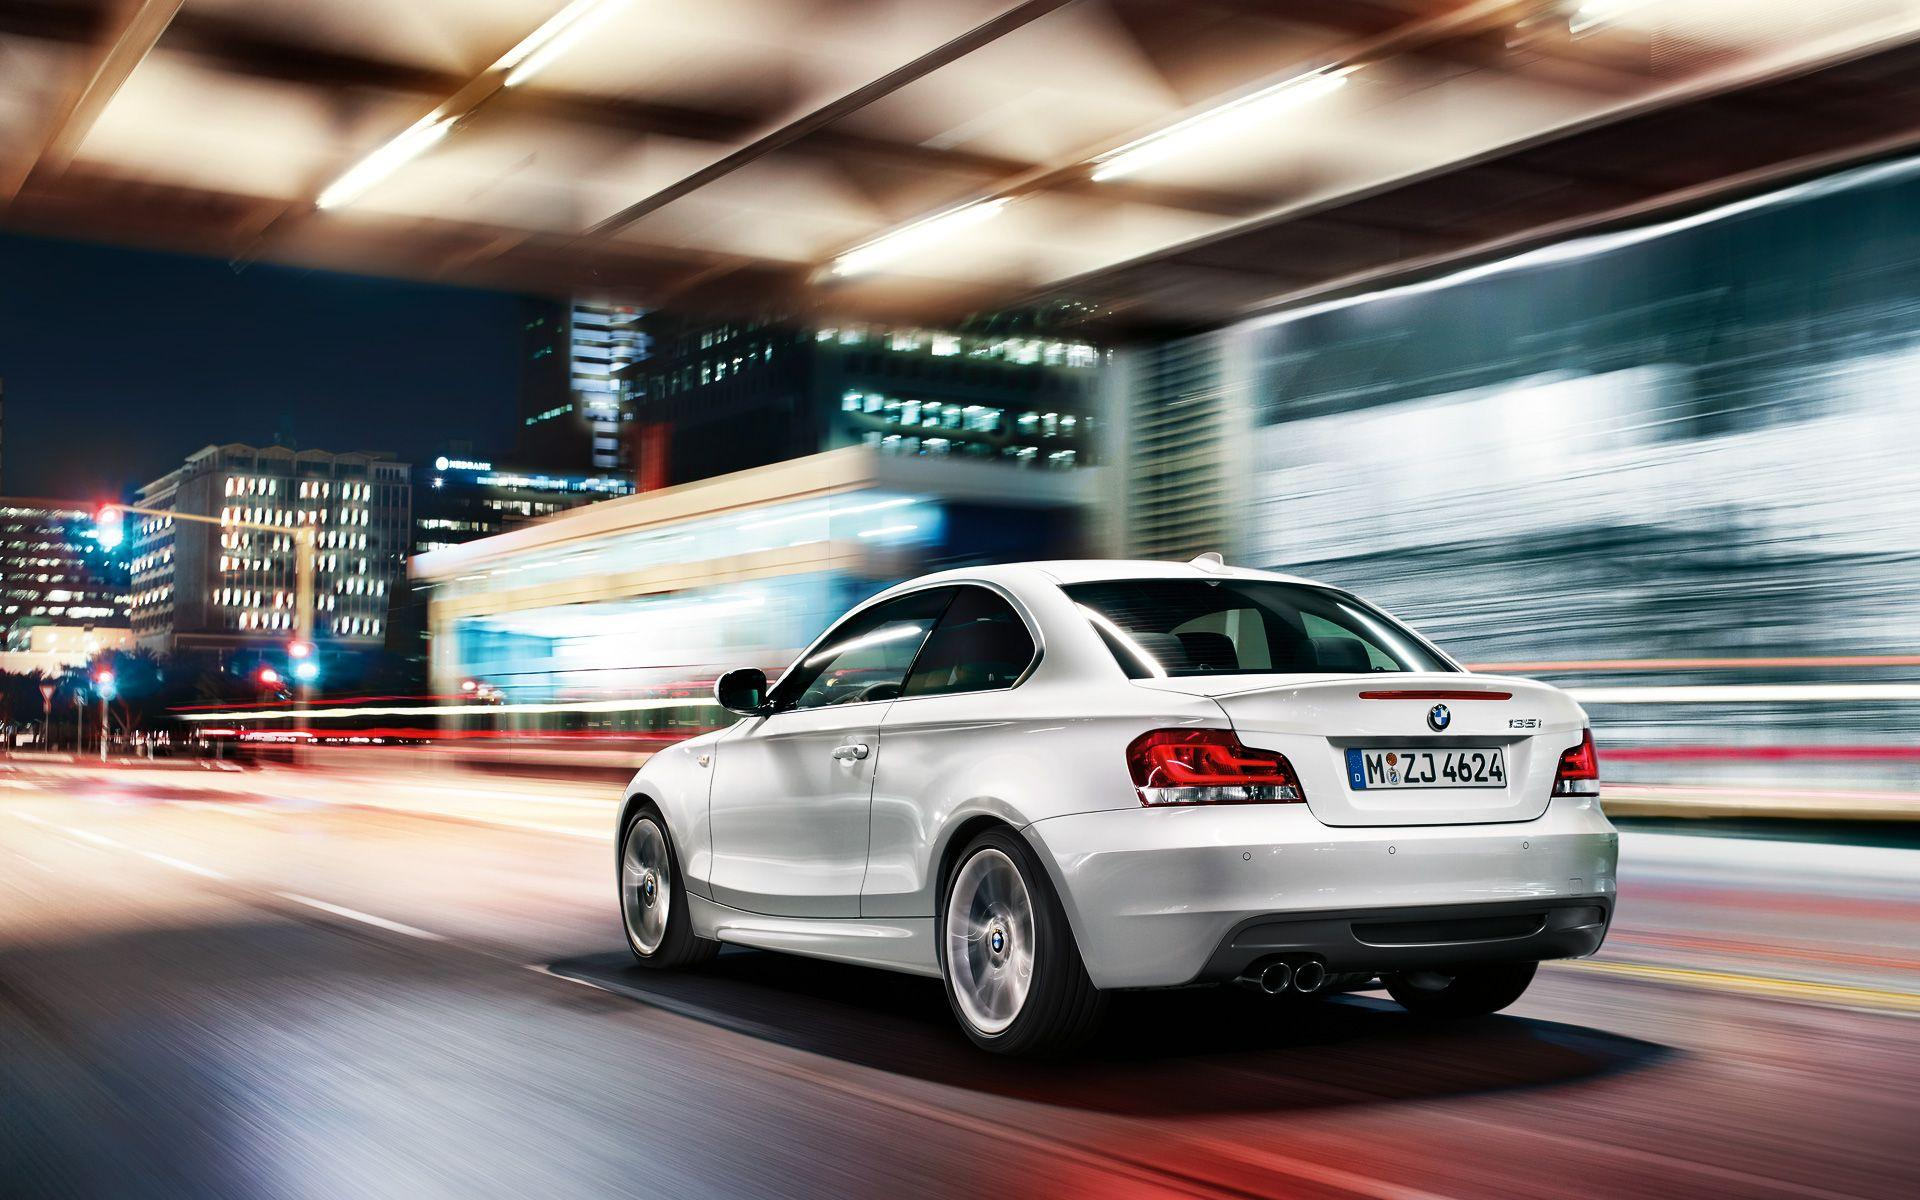 BMW 135i Wallpaper 05 - [1920x1200]